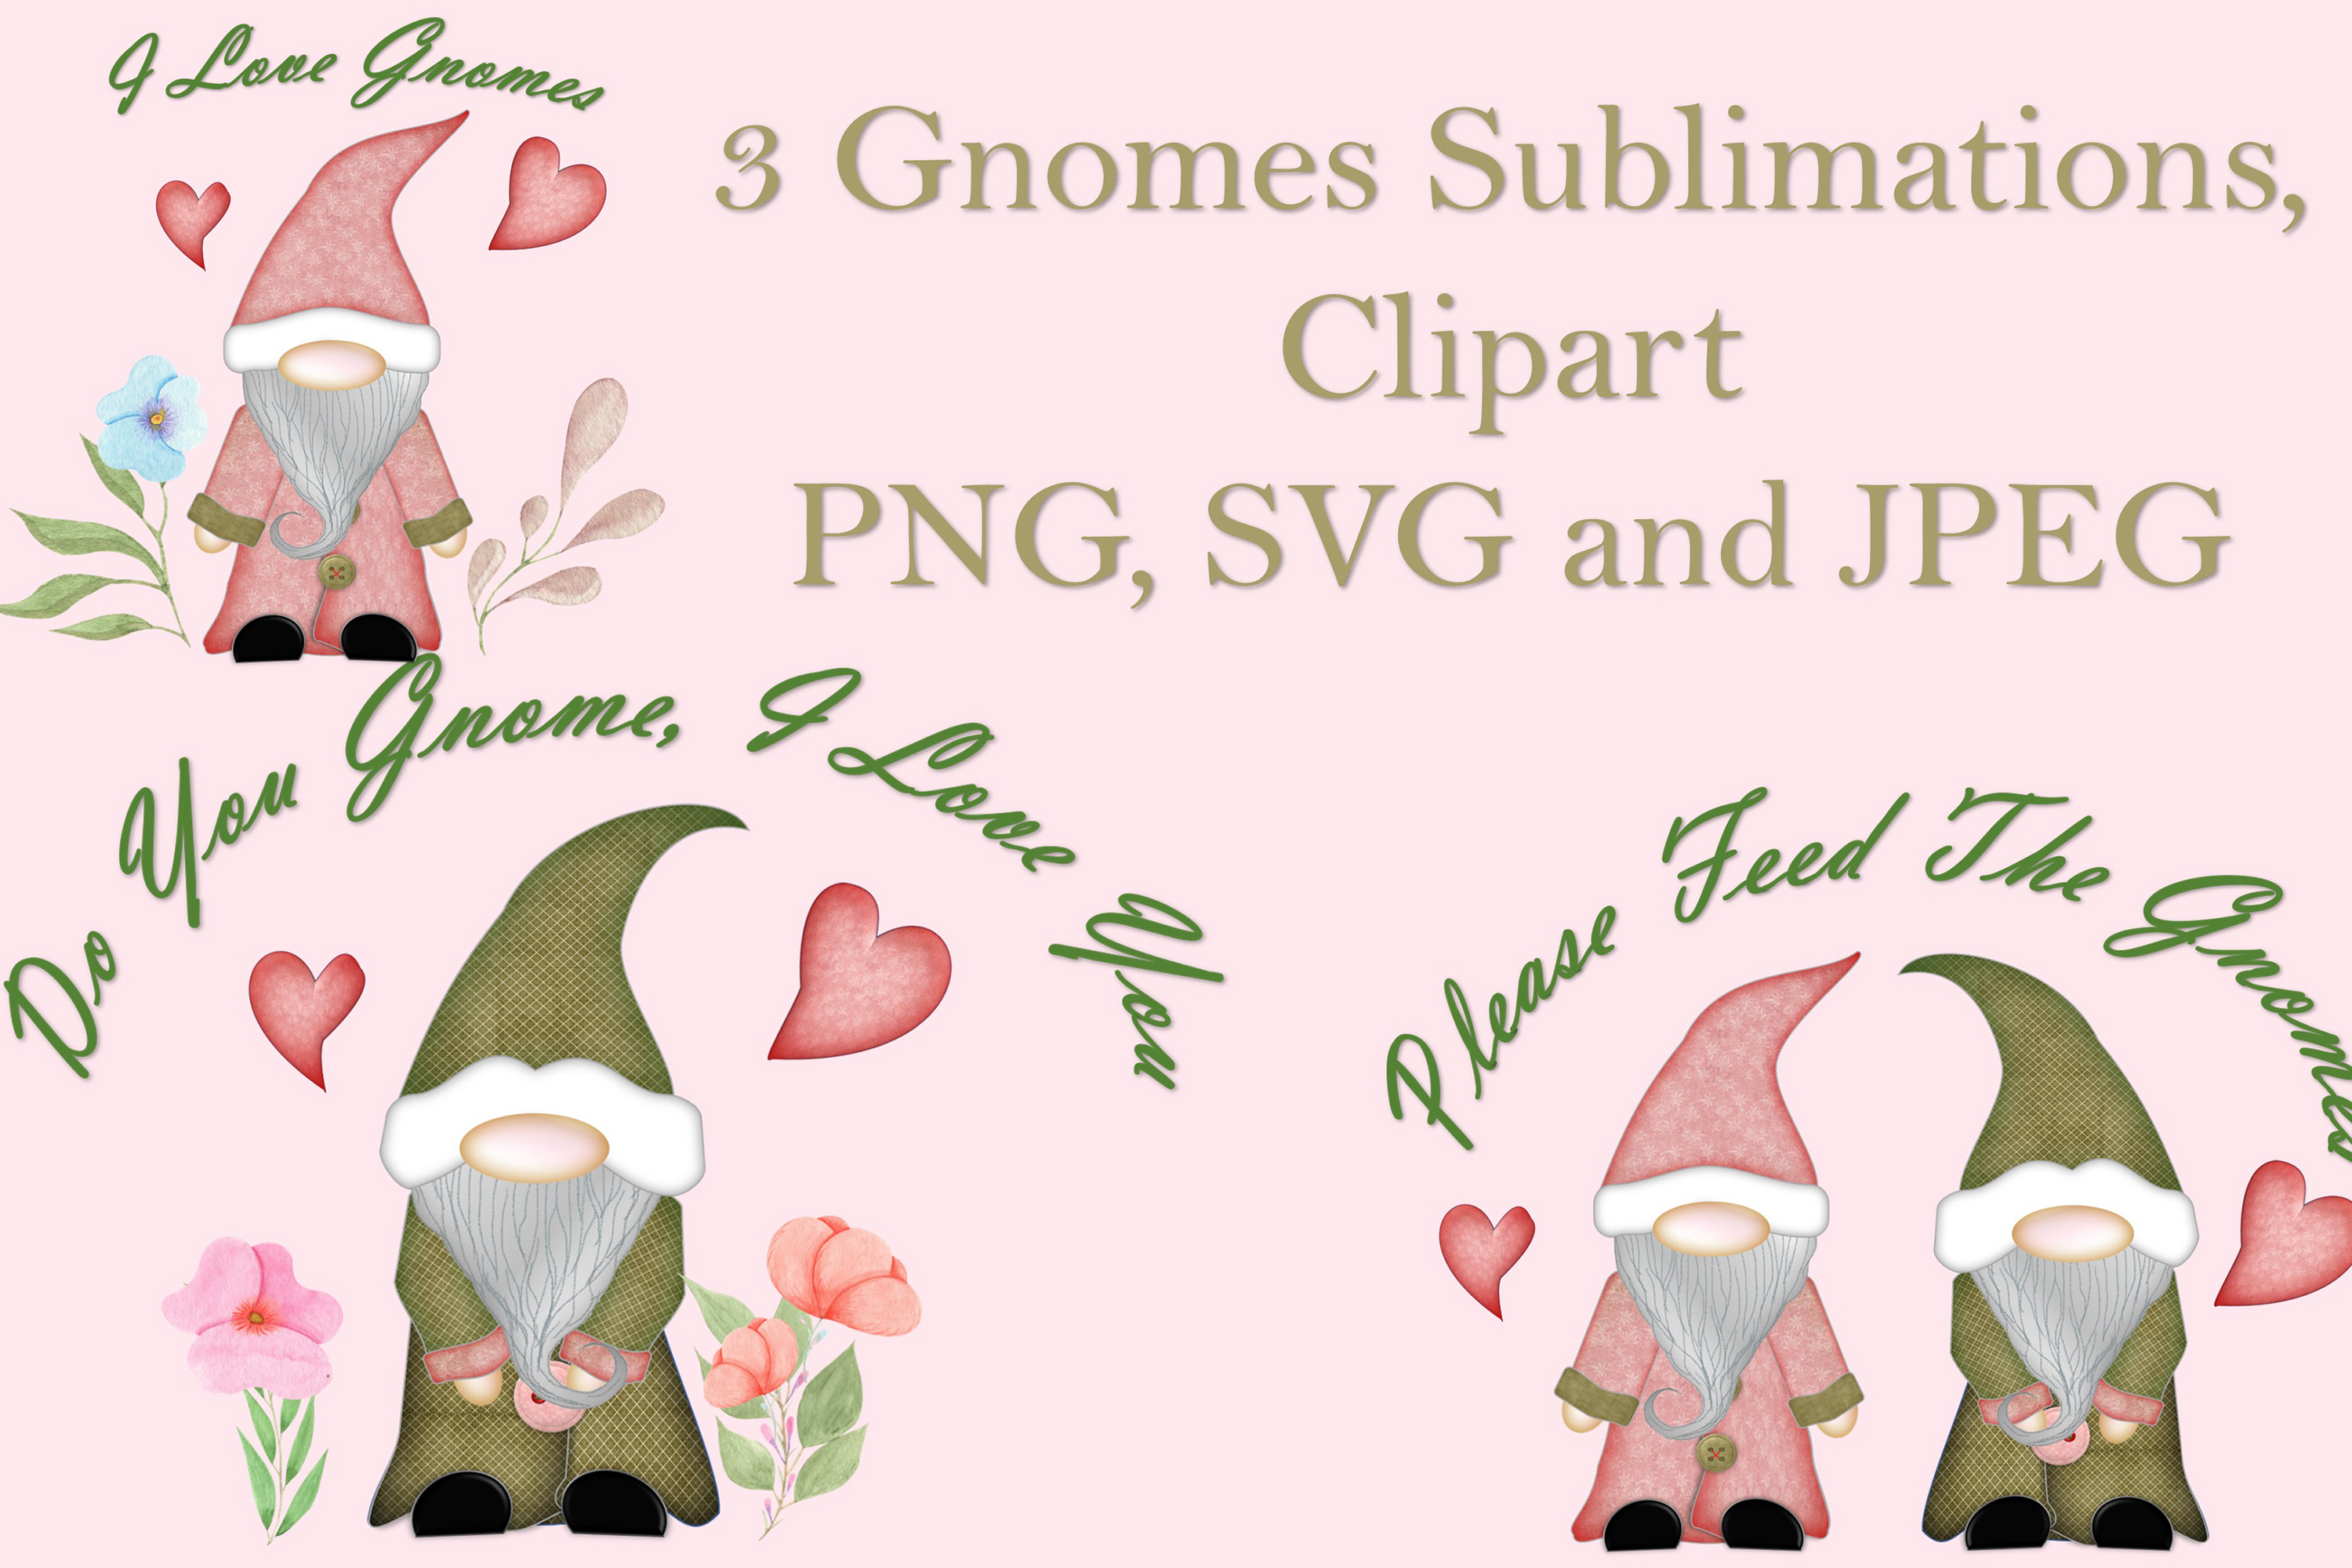 Scandinavian Gnomes Clipart, Sublimation, PNG, SVG and JPEG example image 1